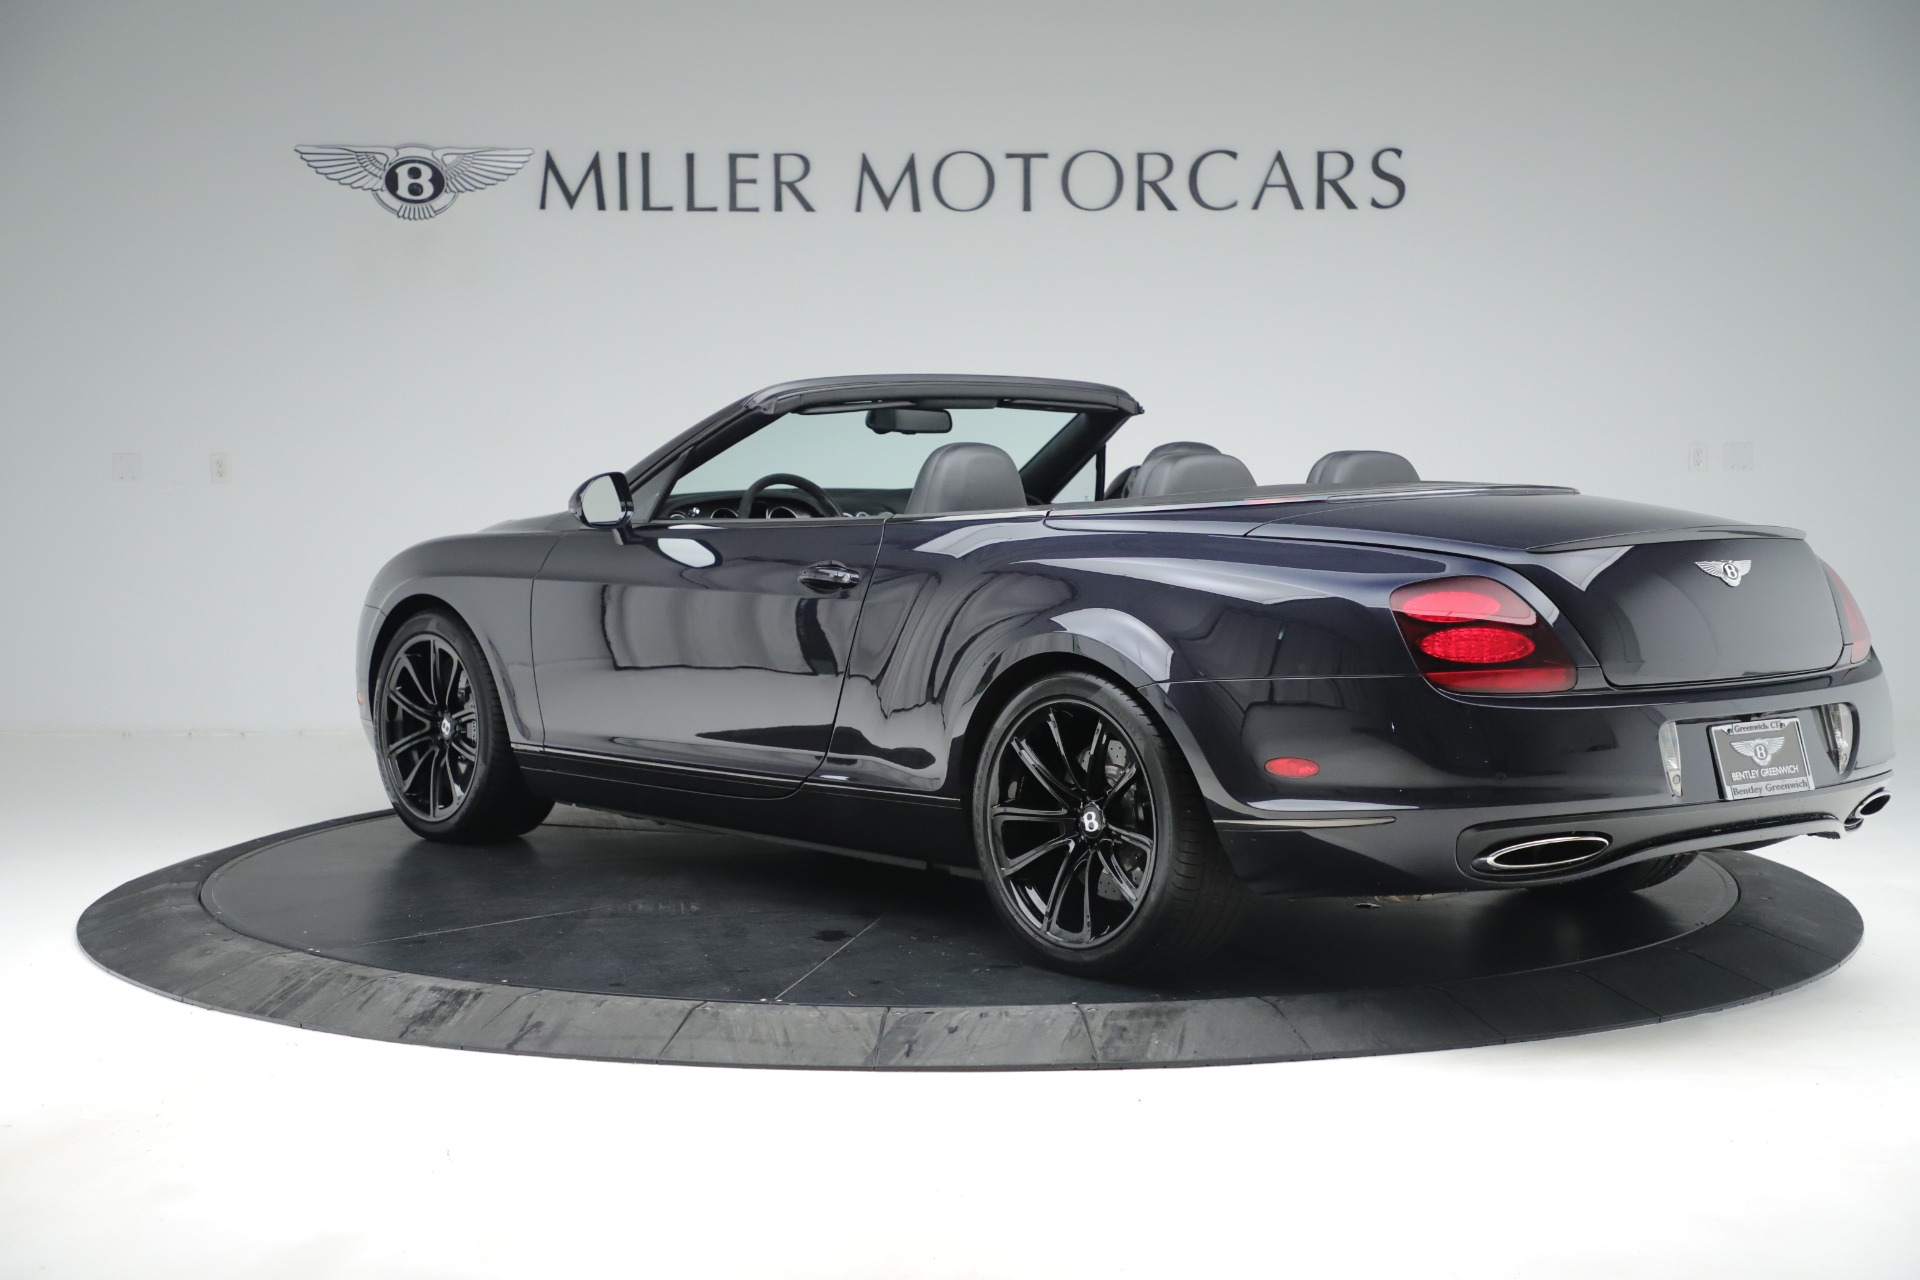 Used 2012 Bentley Continental GT Supersports For Sale In Westport, CT 3214_p4